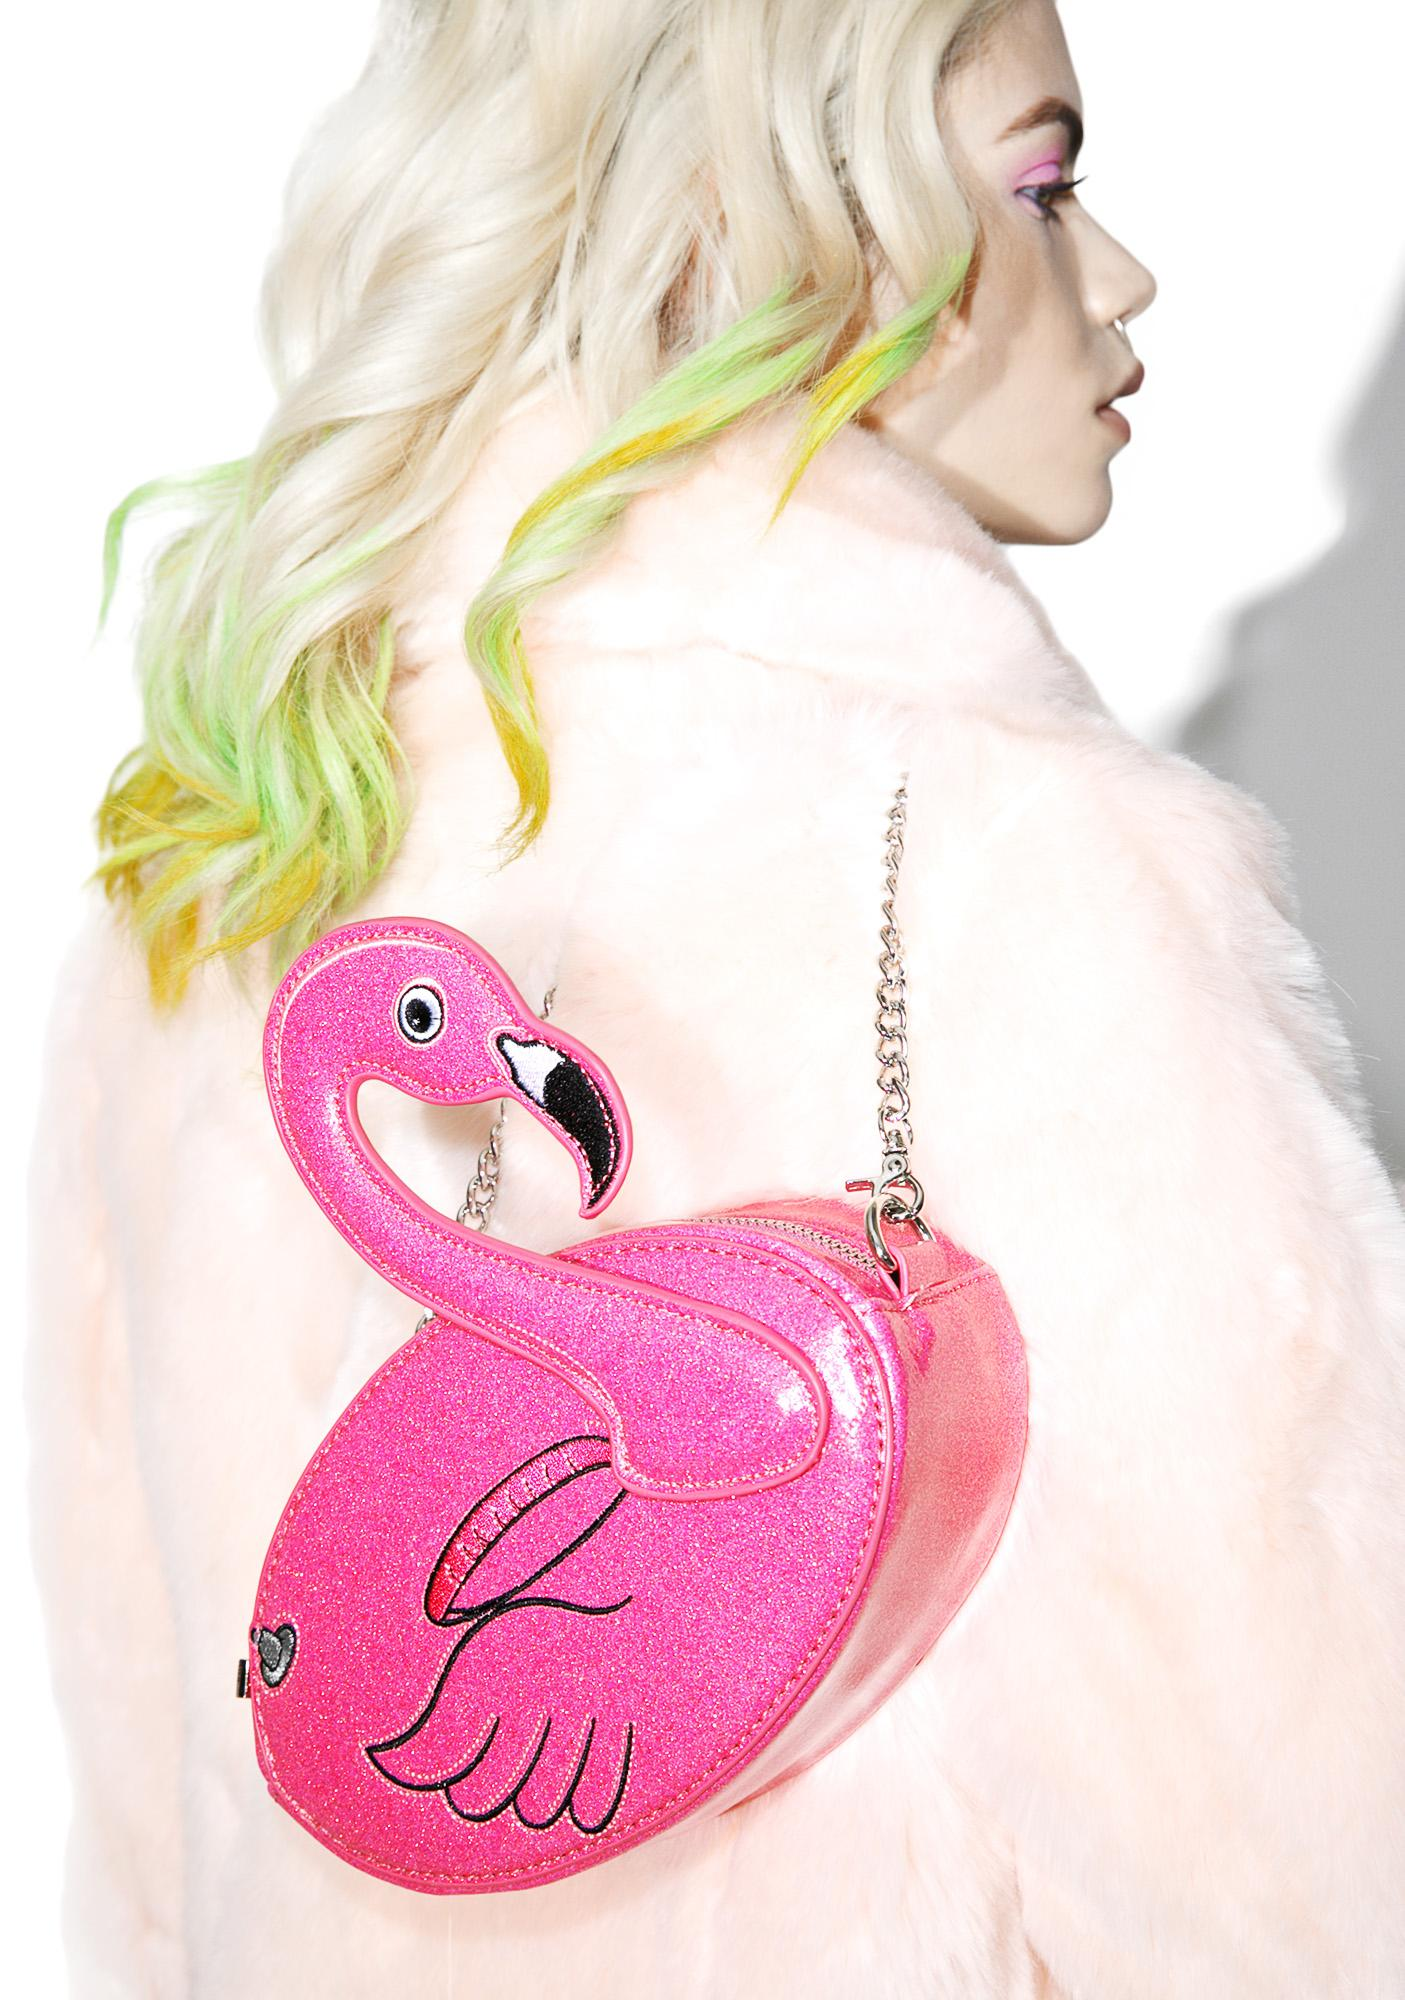 Skinnydip Flamingo Crossbody Bag